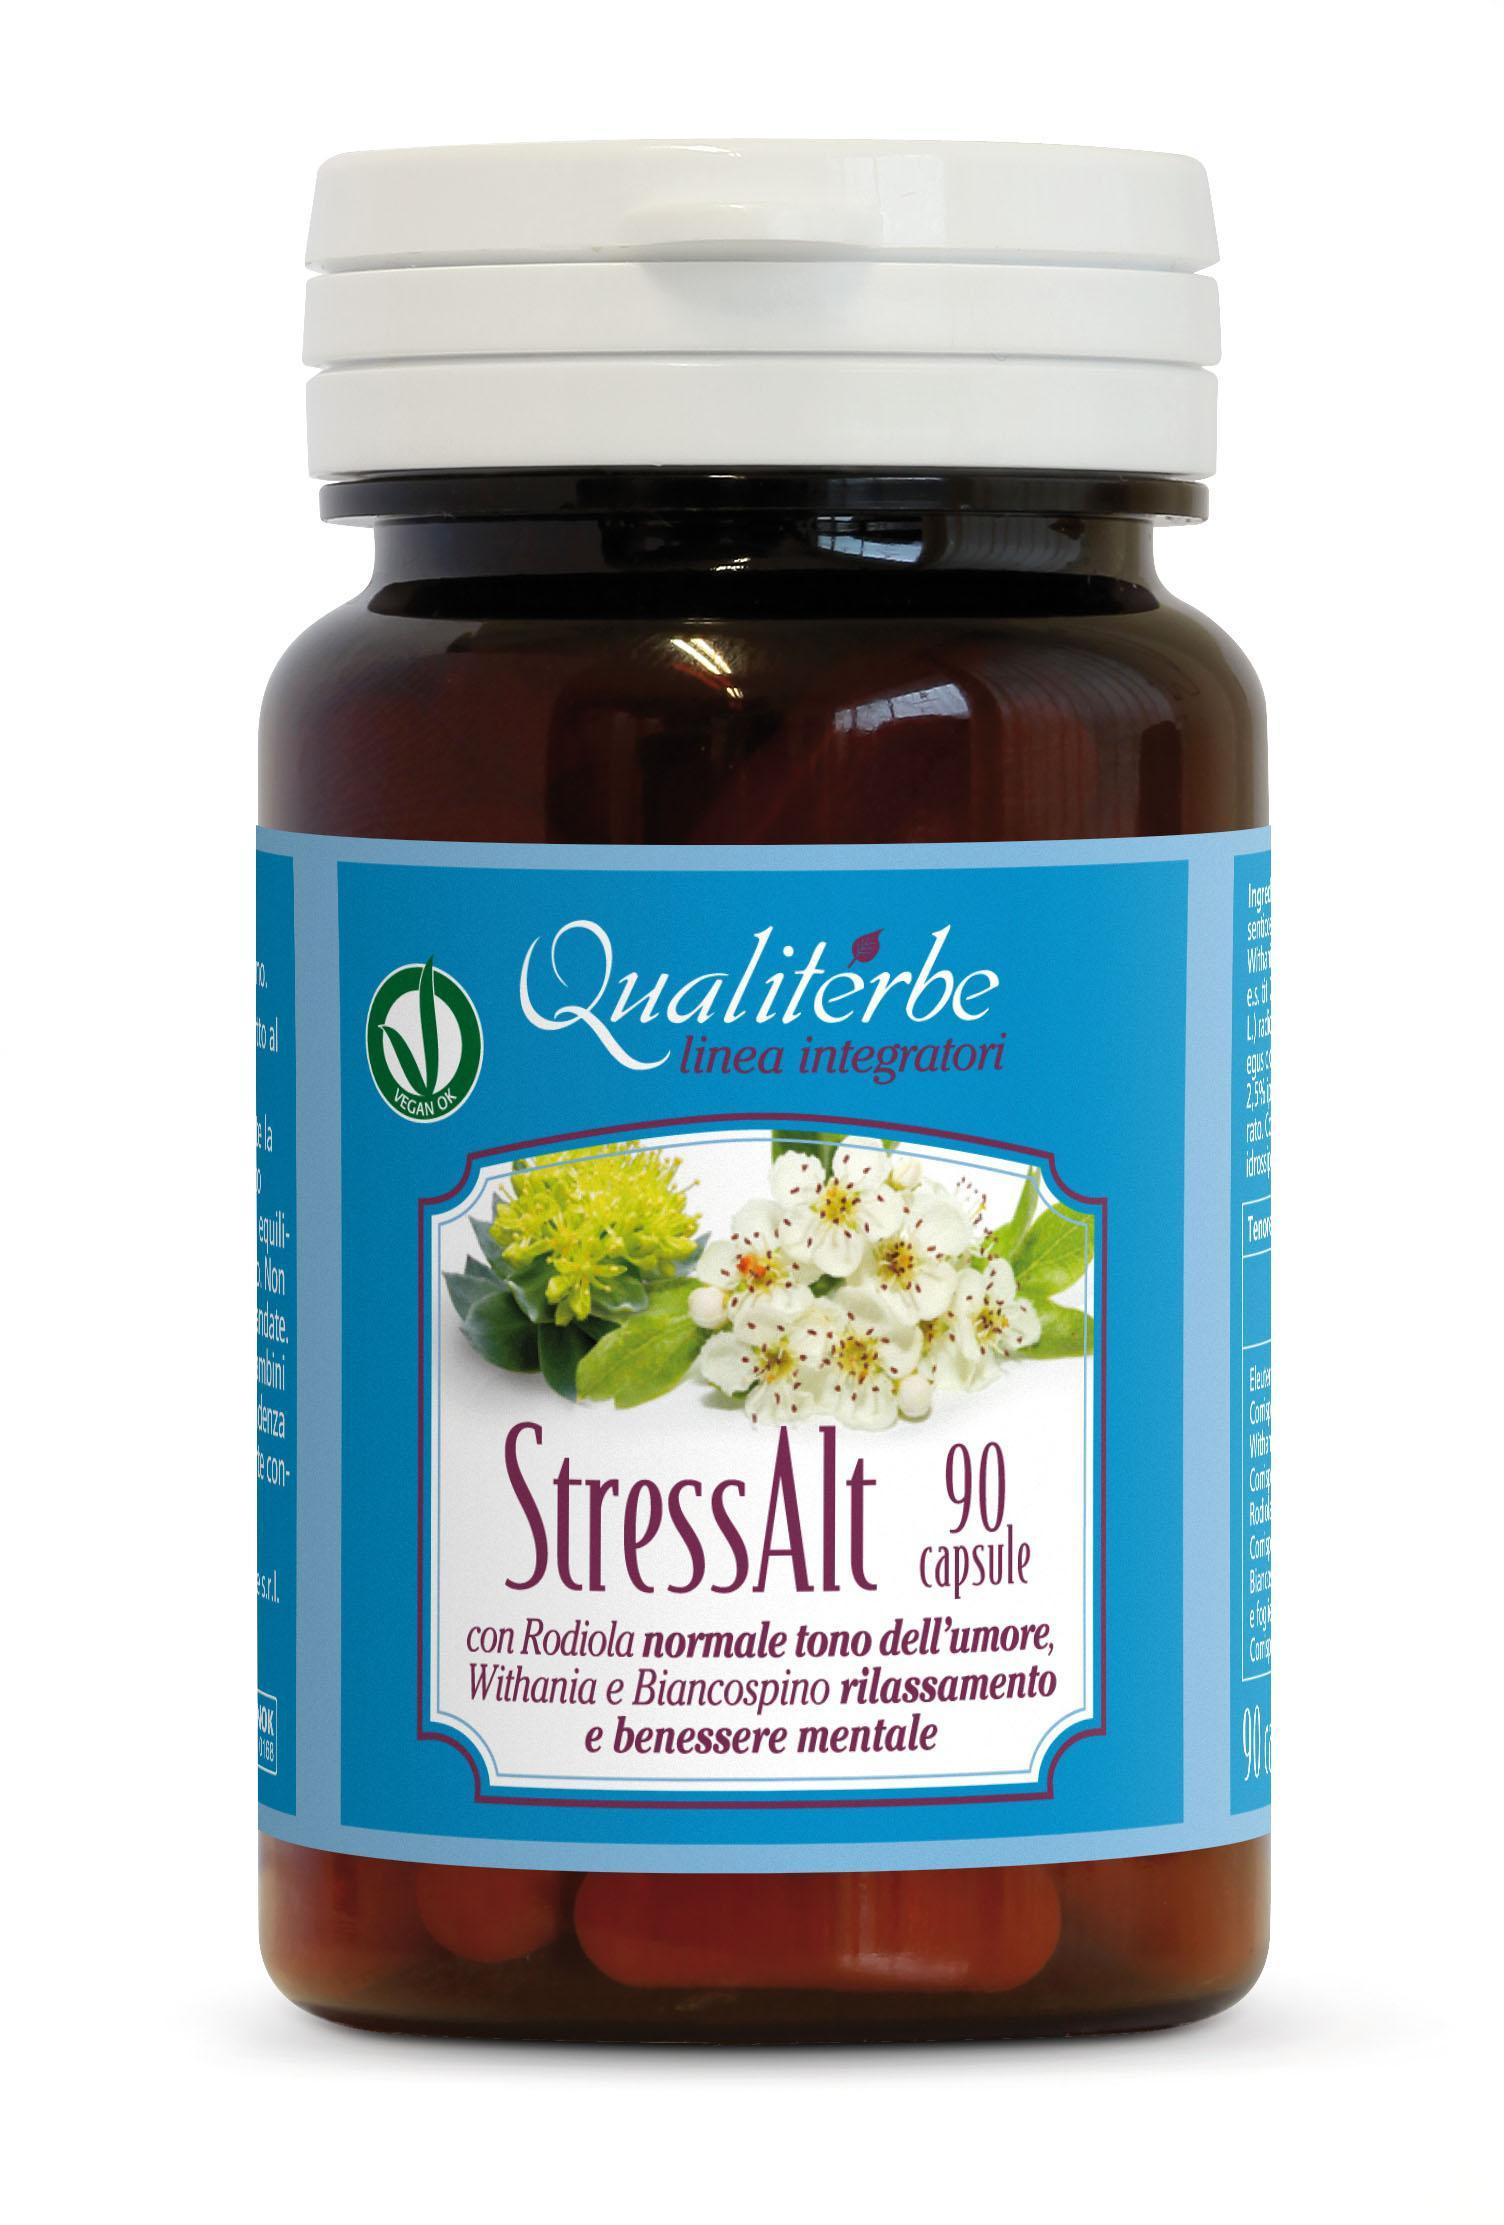 STRESS ALT 90 CAPSULE (Vegan Ok) Antistress